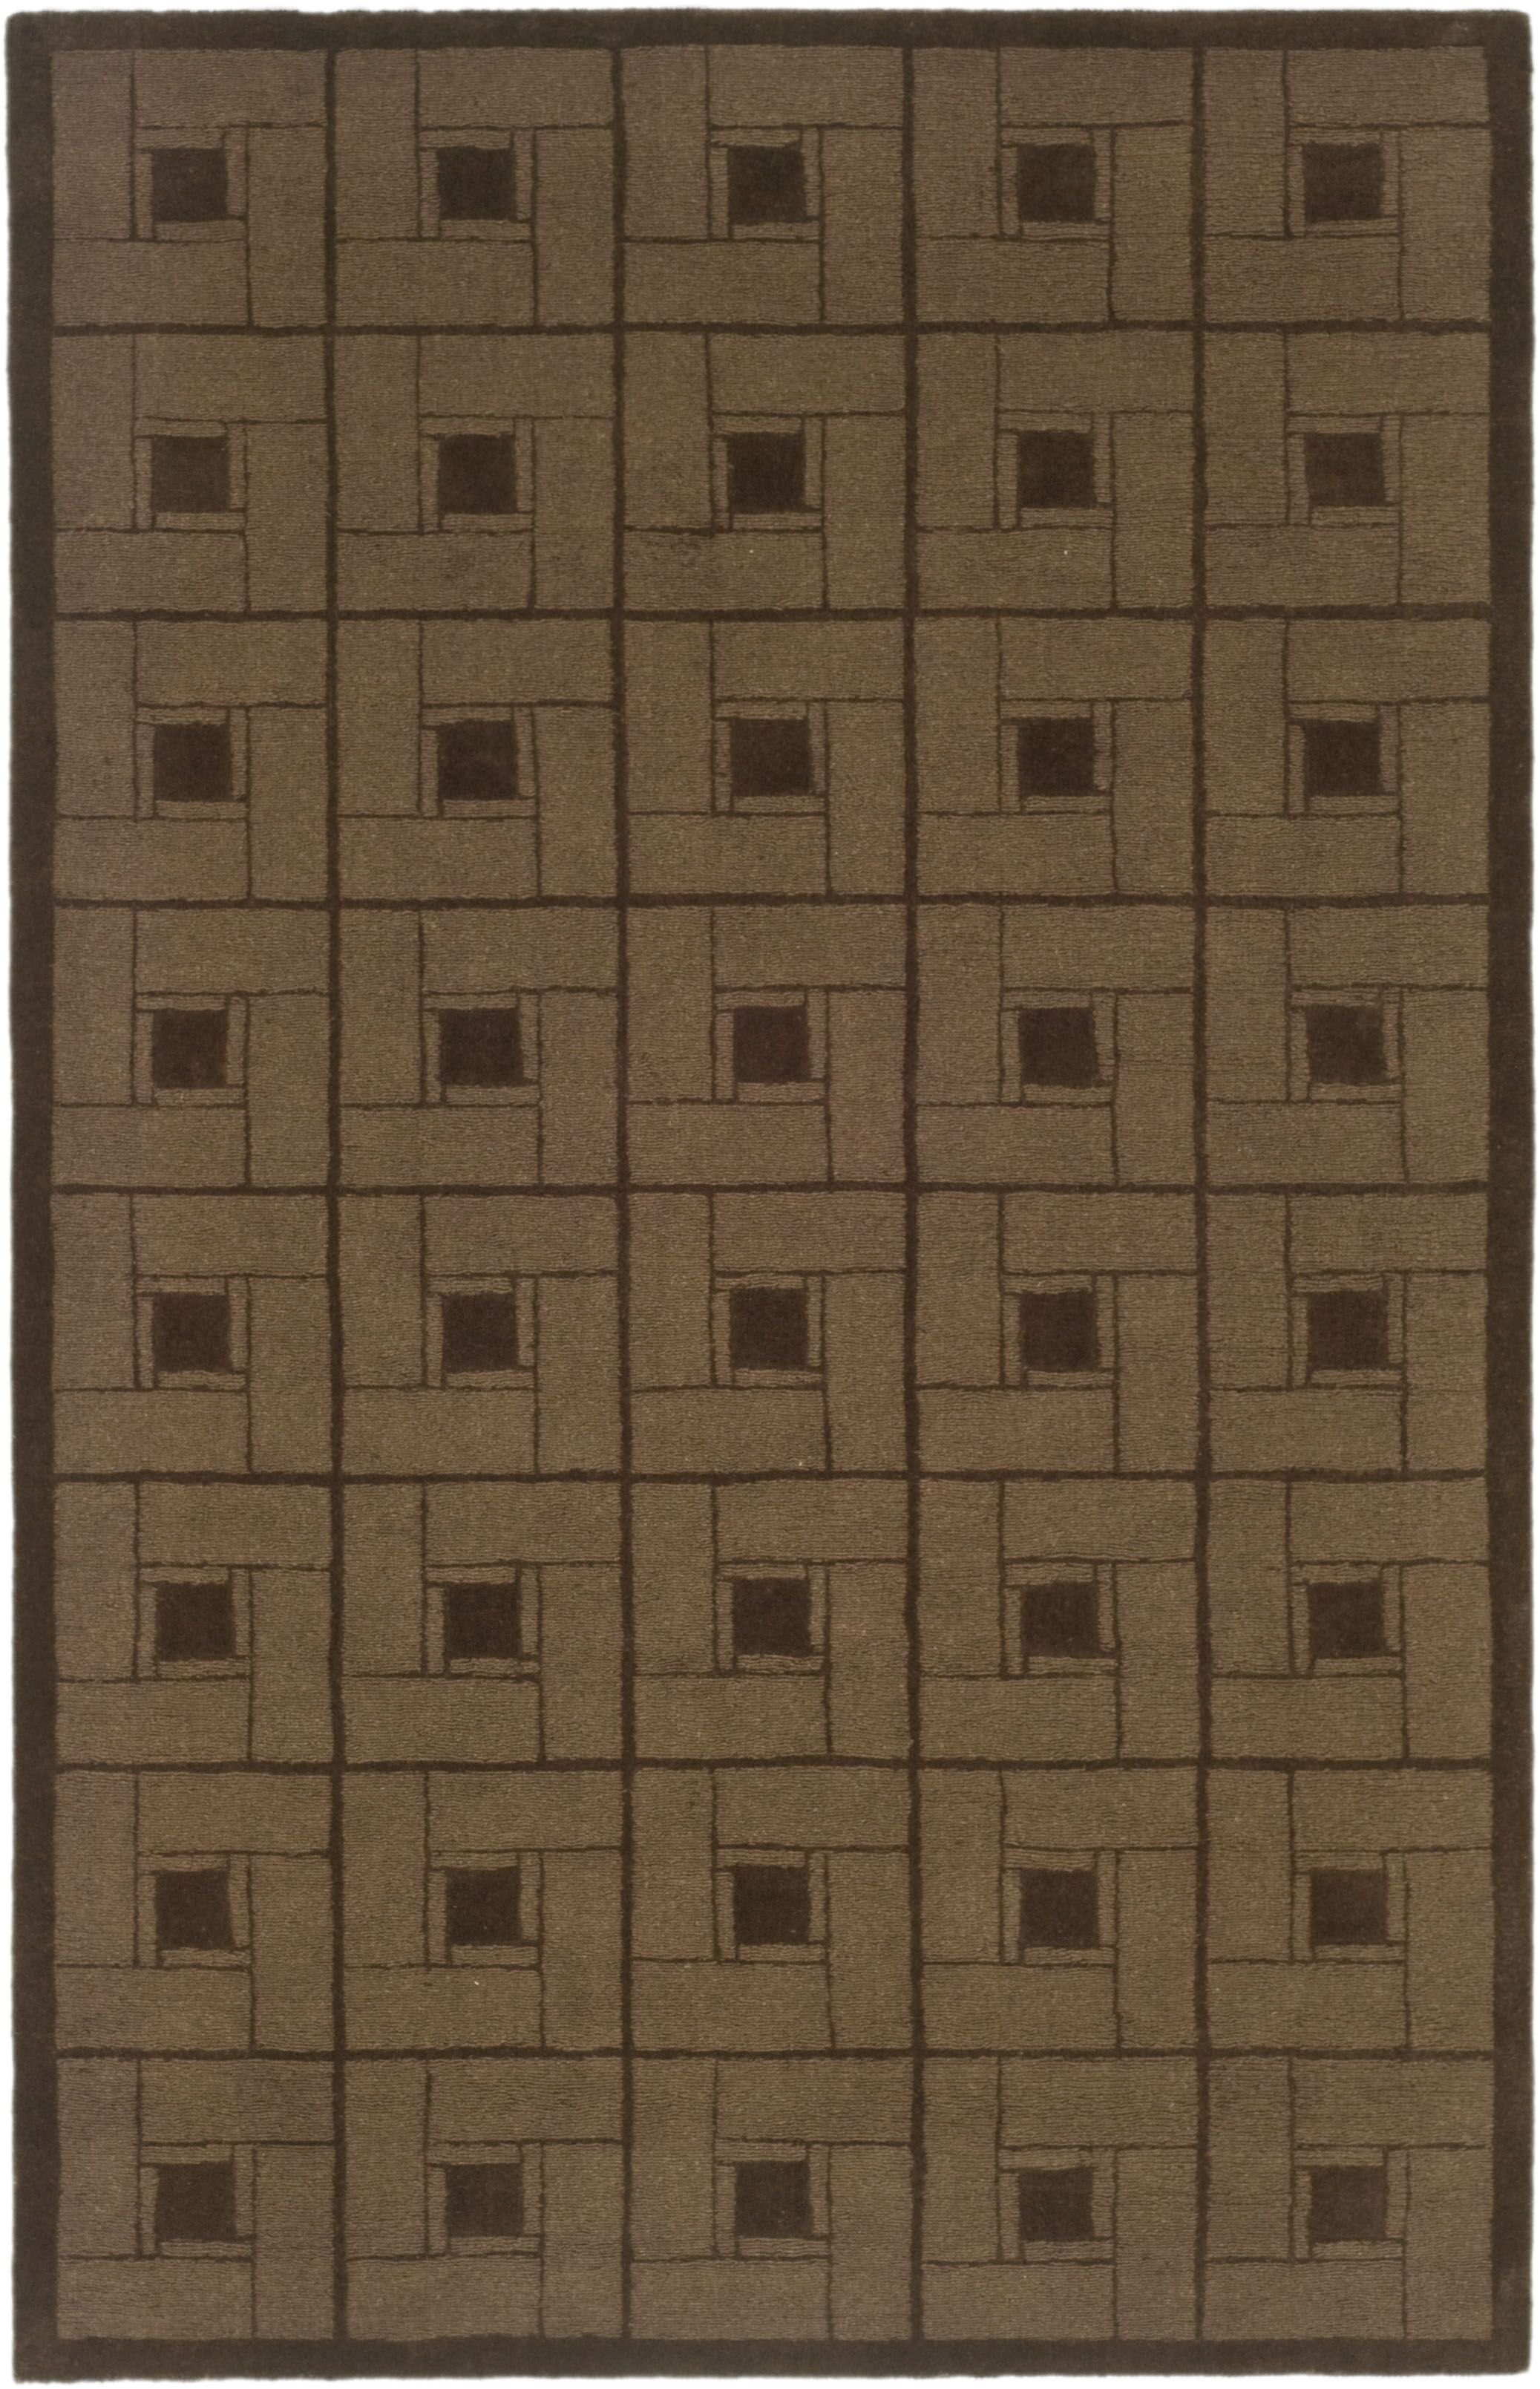 Martha Stewart Square Knot Bay Colt Area Rug Rug Size: Rectangle 5' x 8'